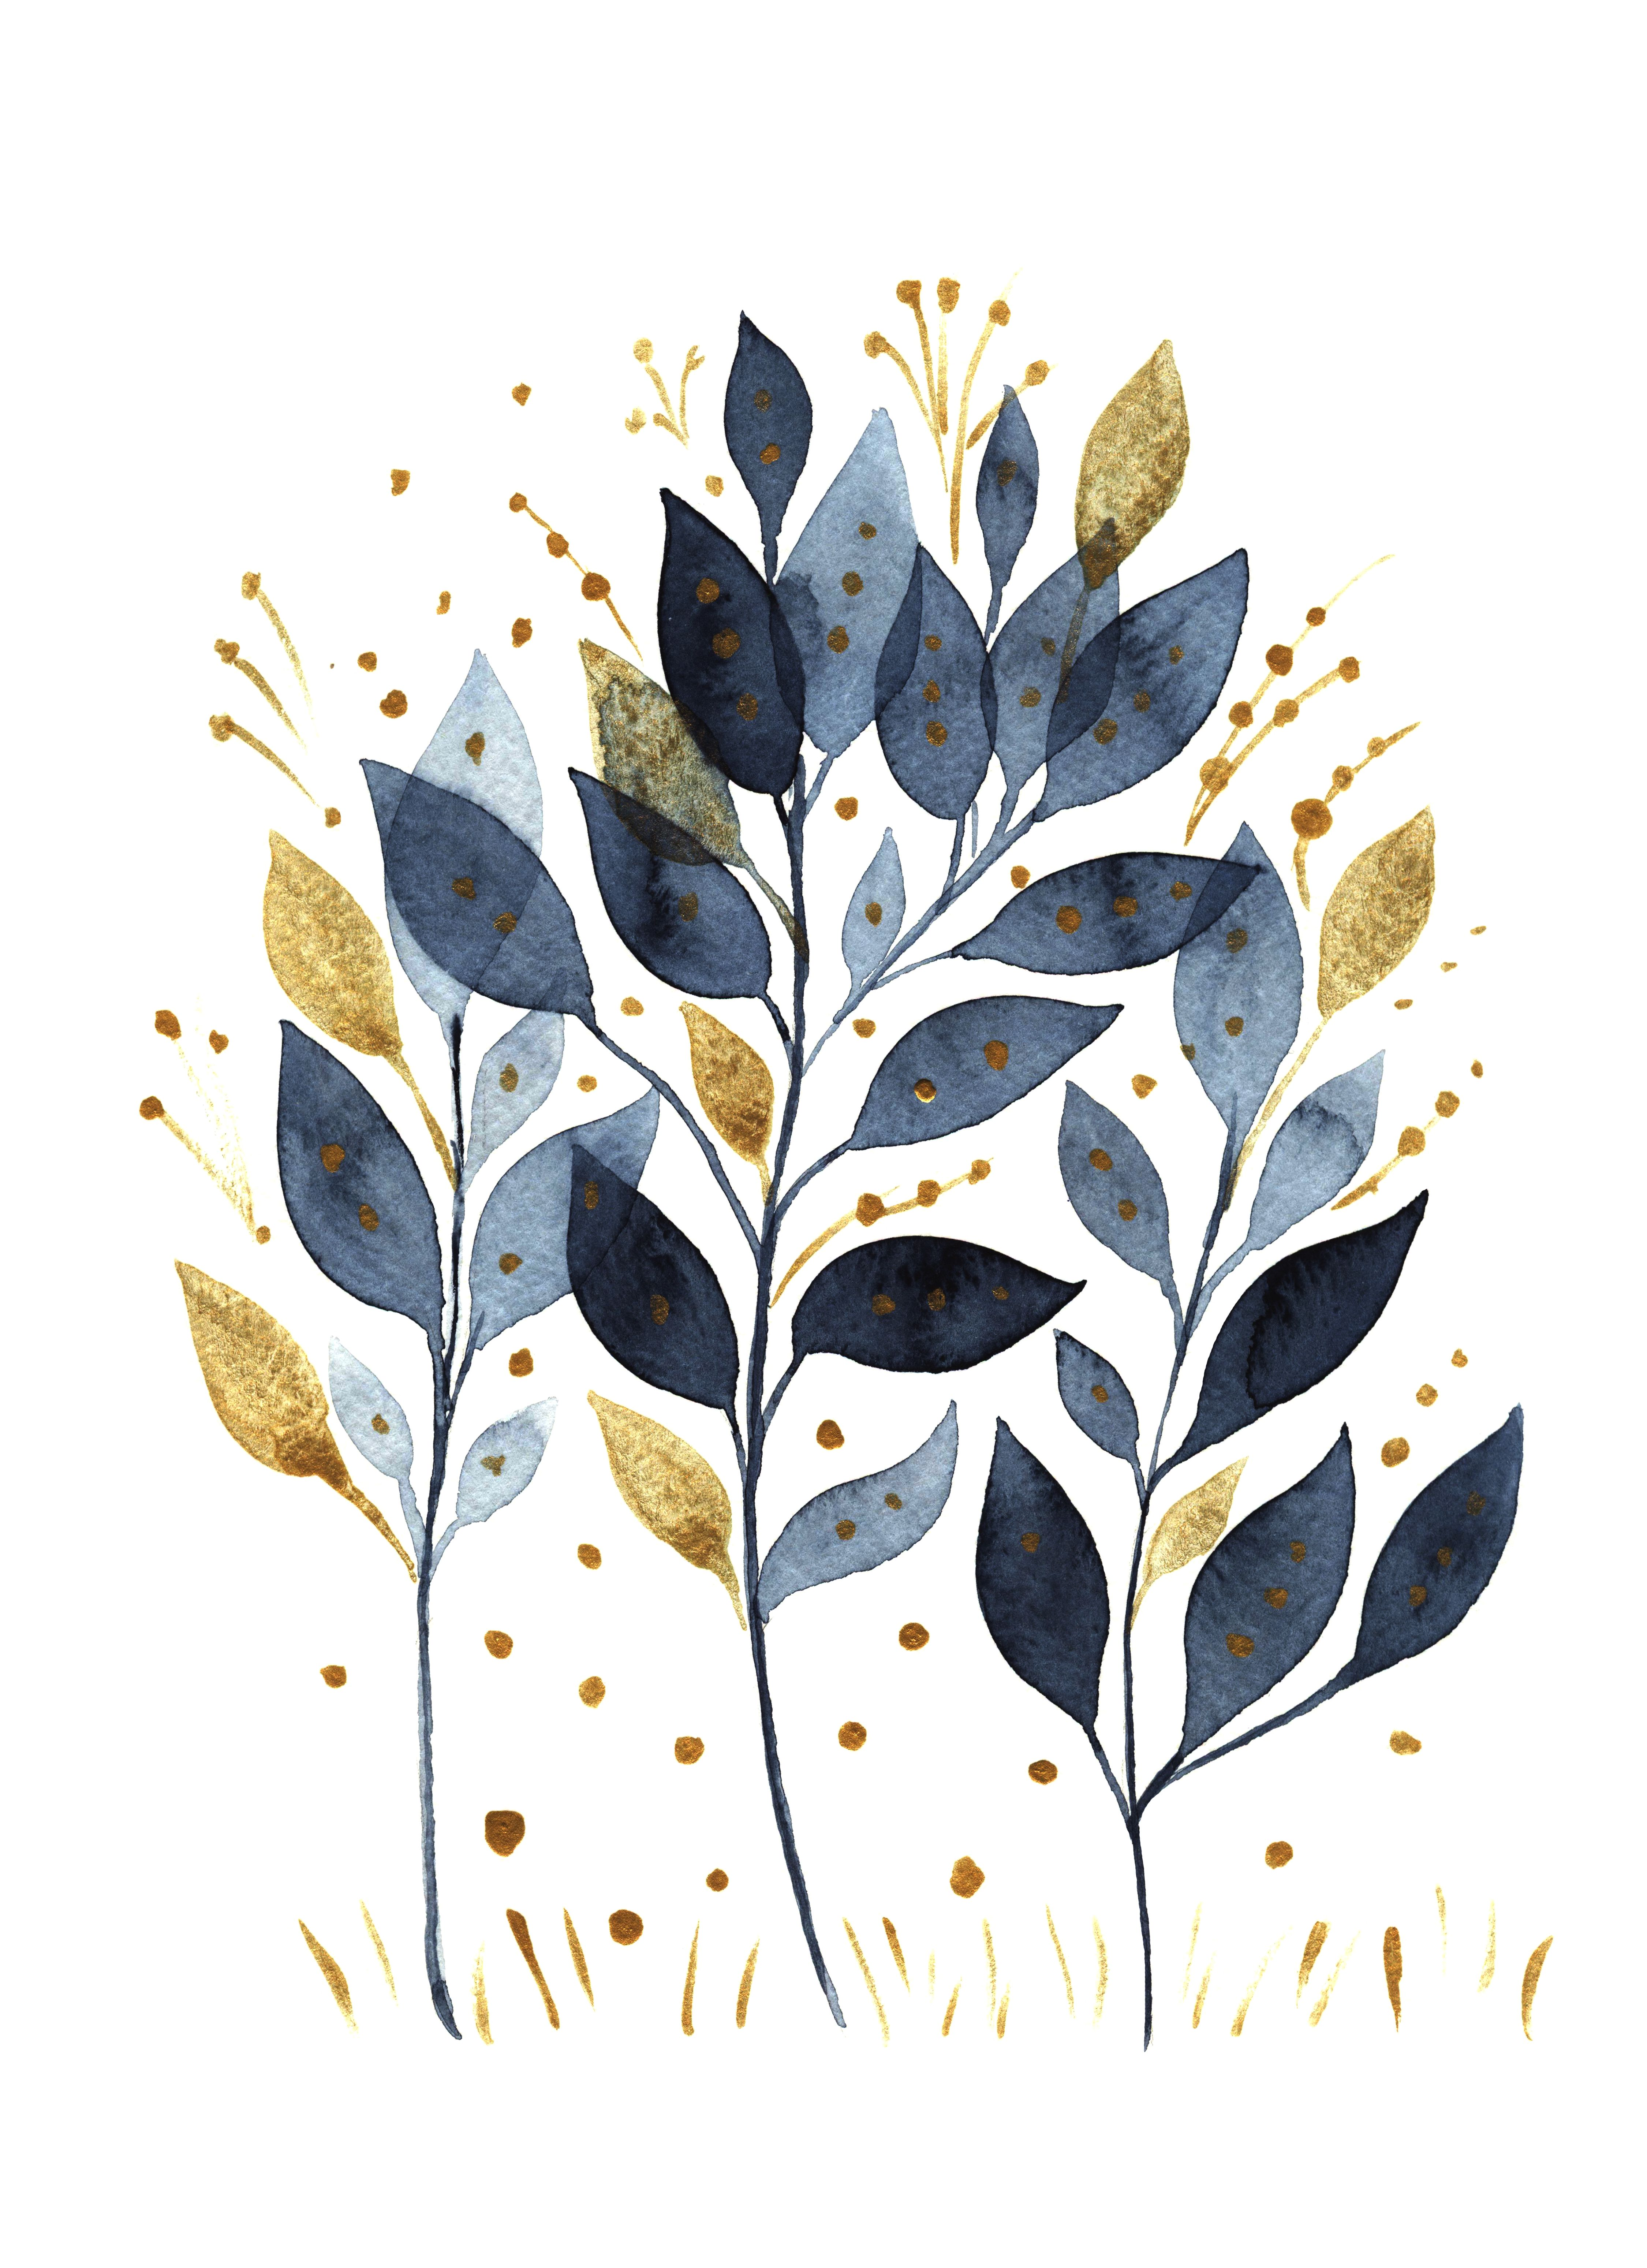 Twigs with blue and gold leaves